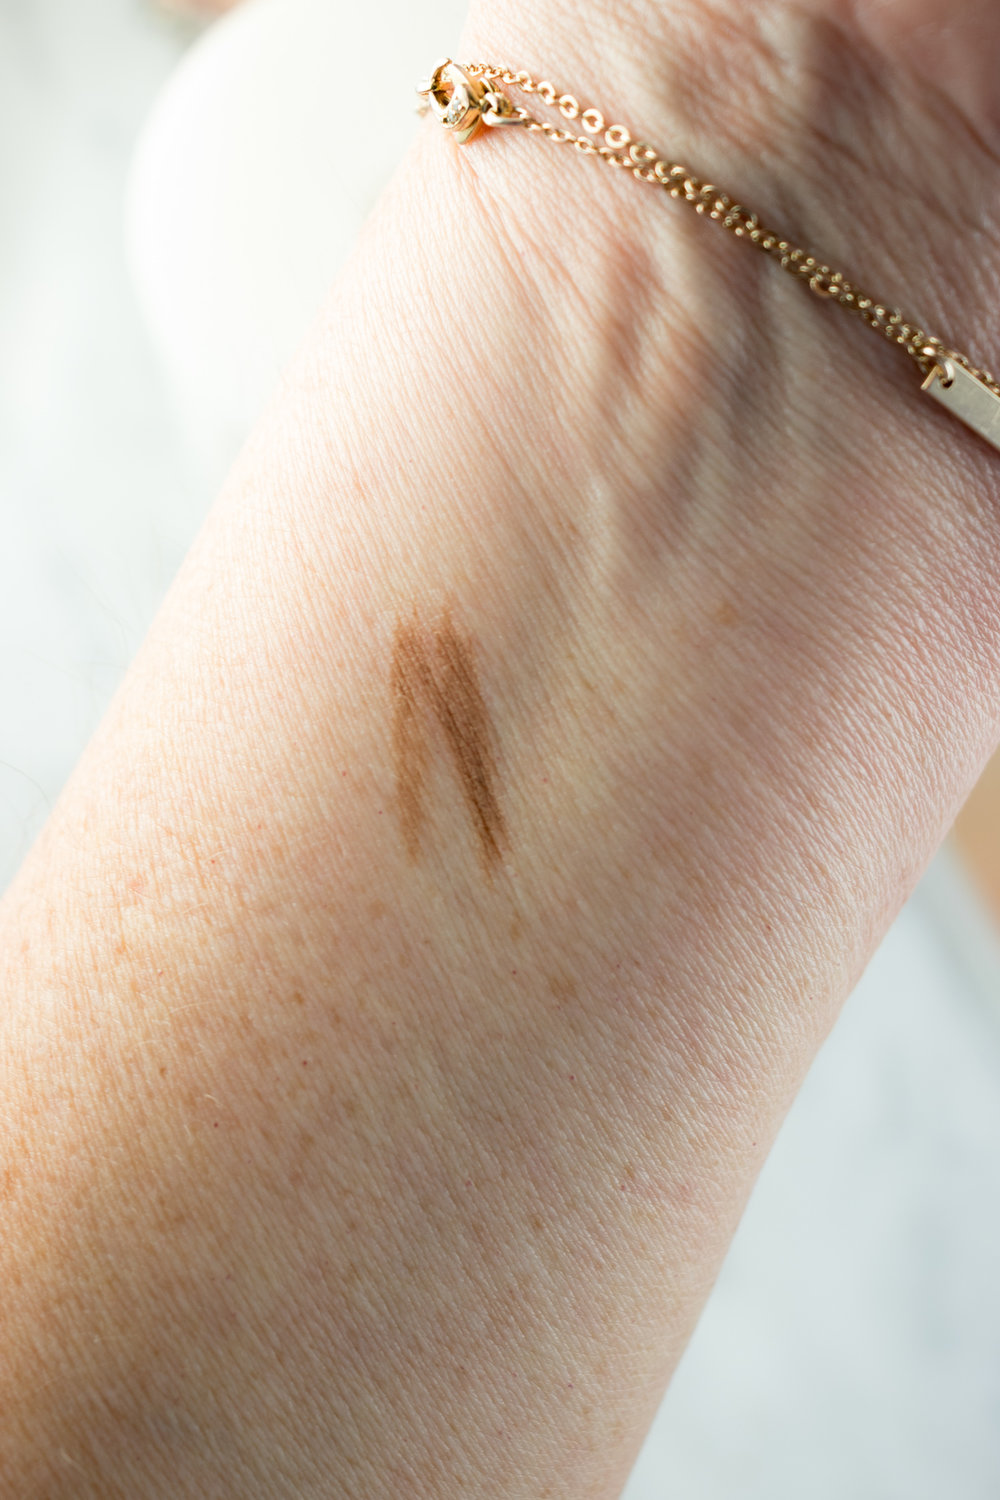 NARS Brow Perfector Swatch